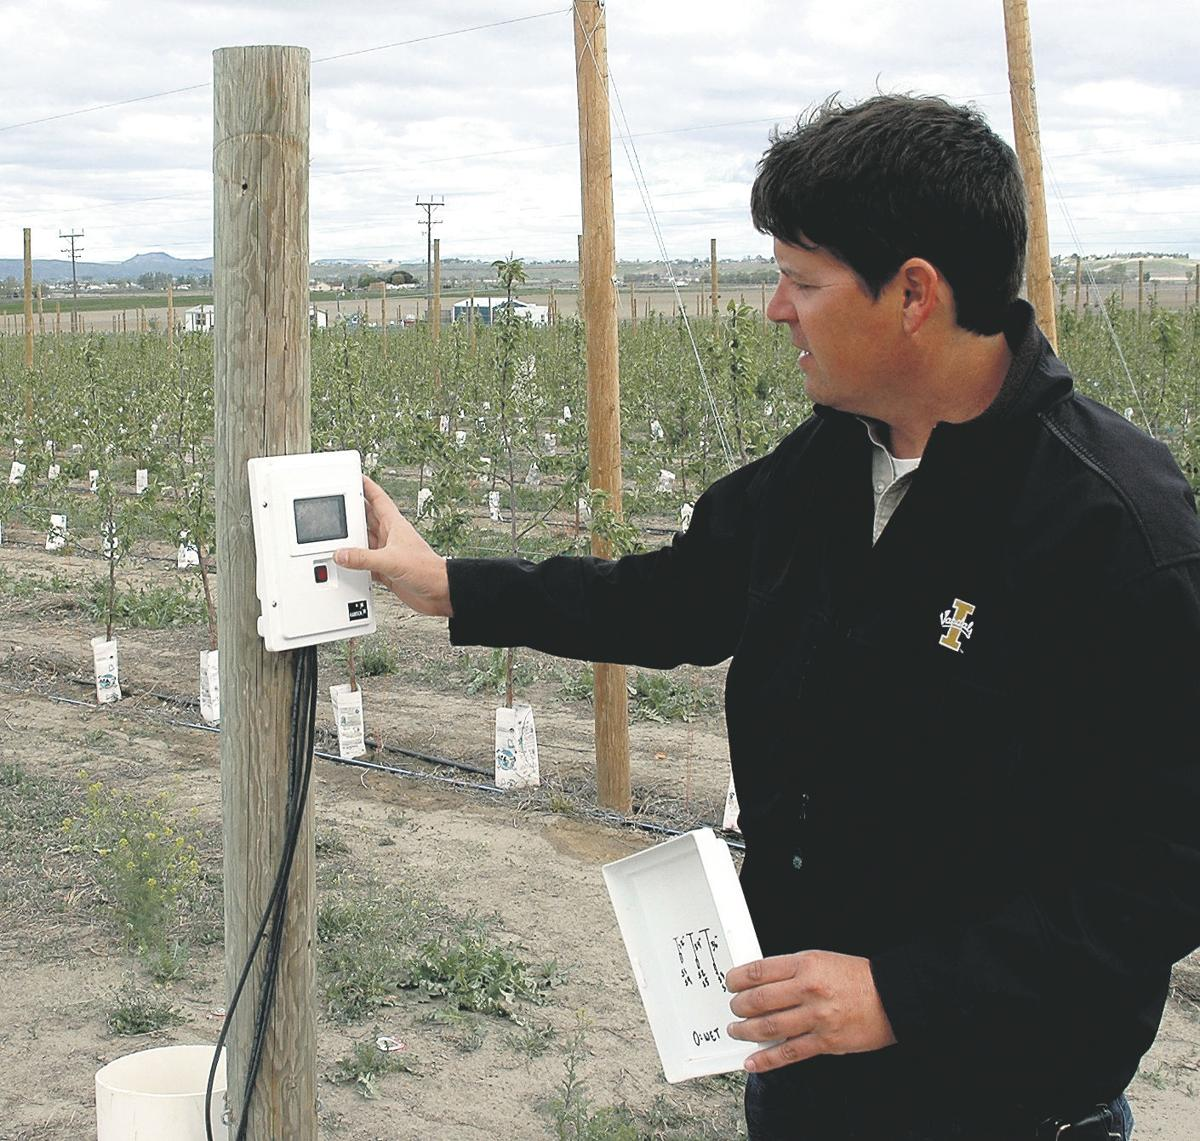 High costs spark new technology